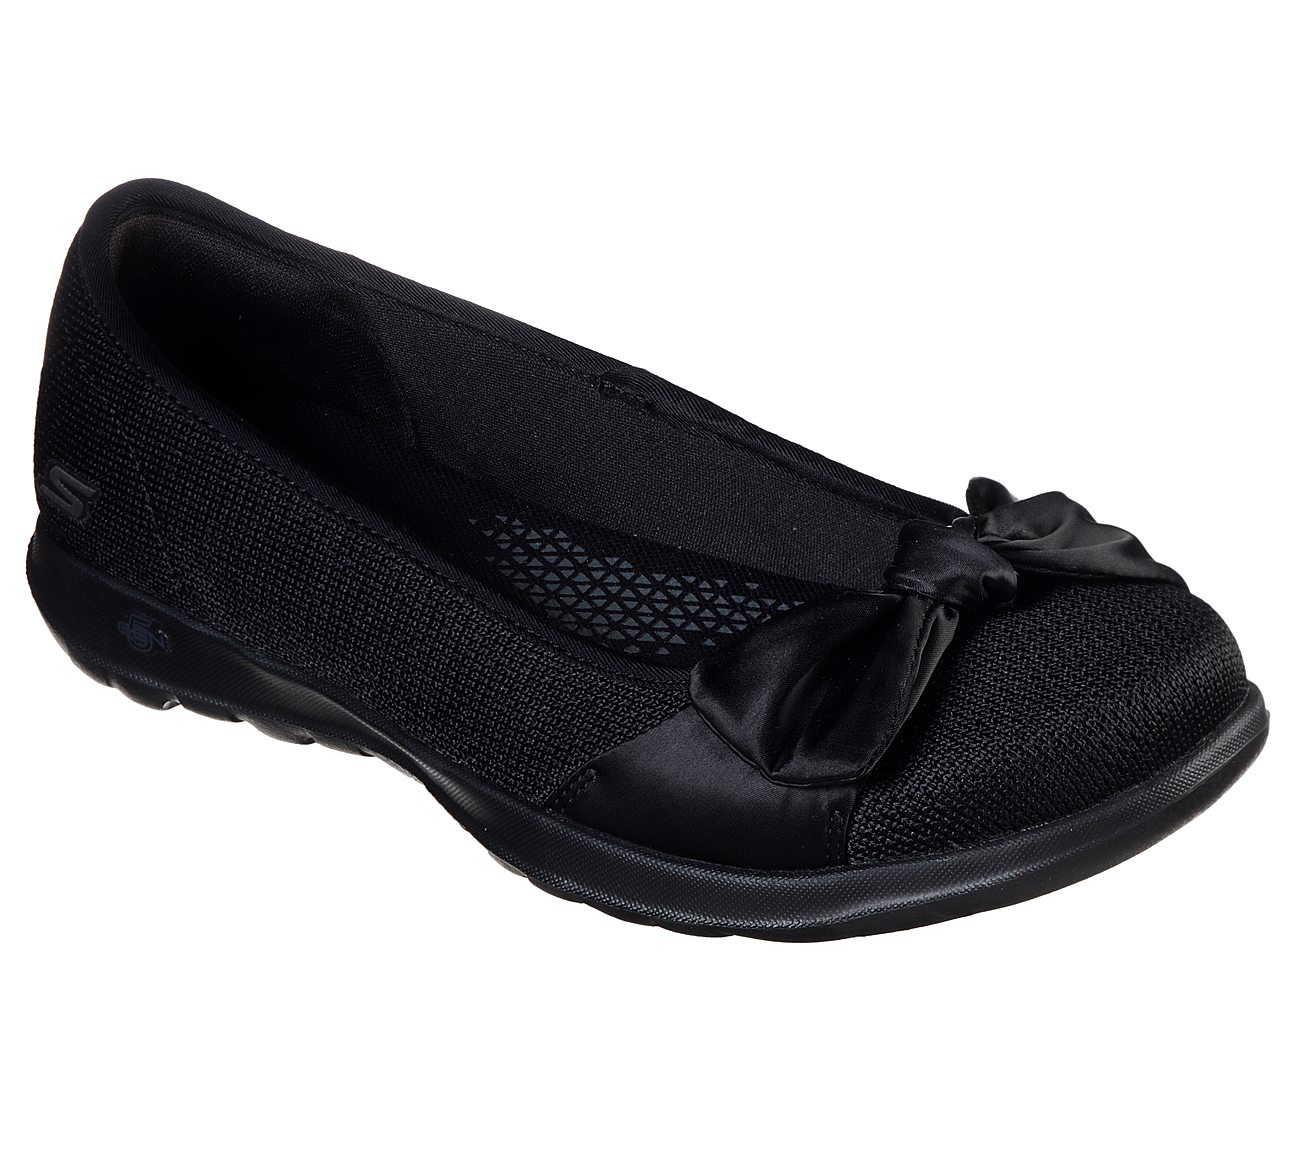 Skechers Womens Size 5.5 Black Shape